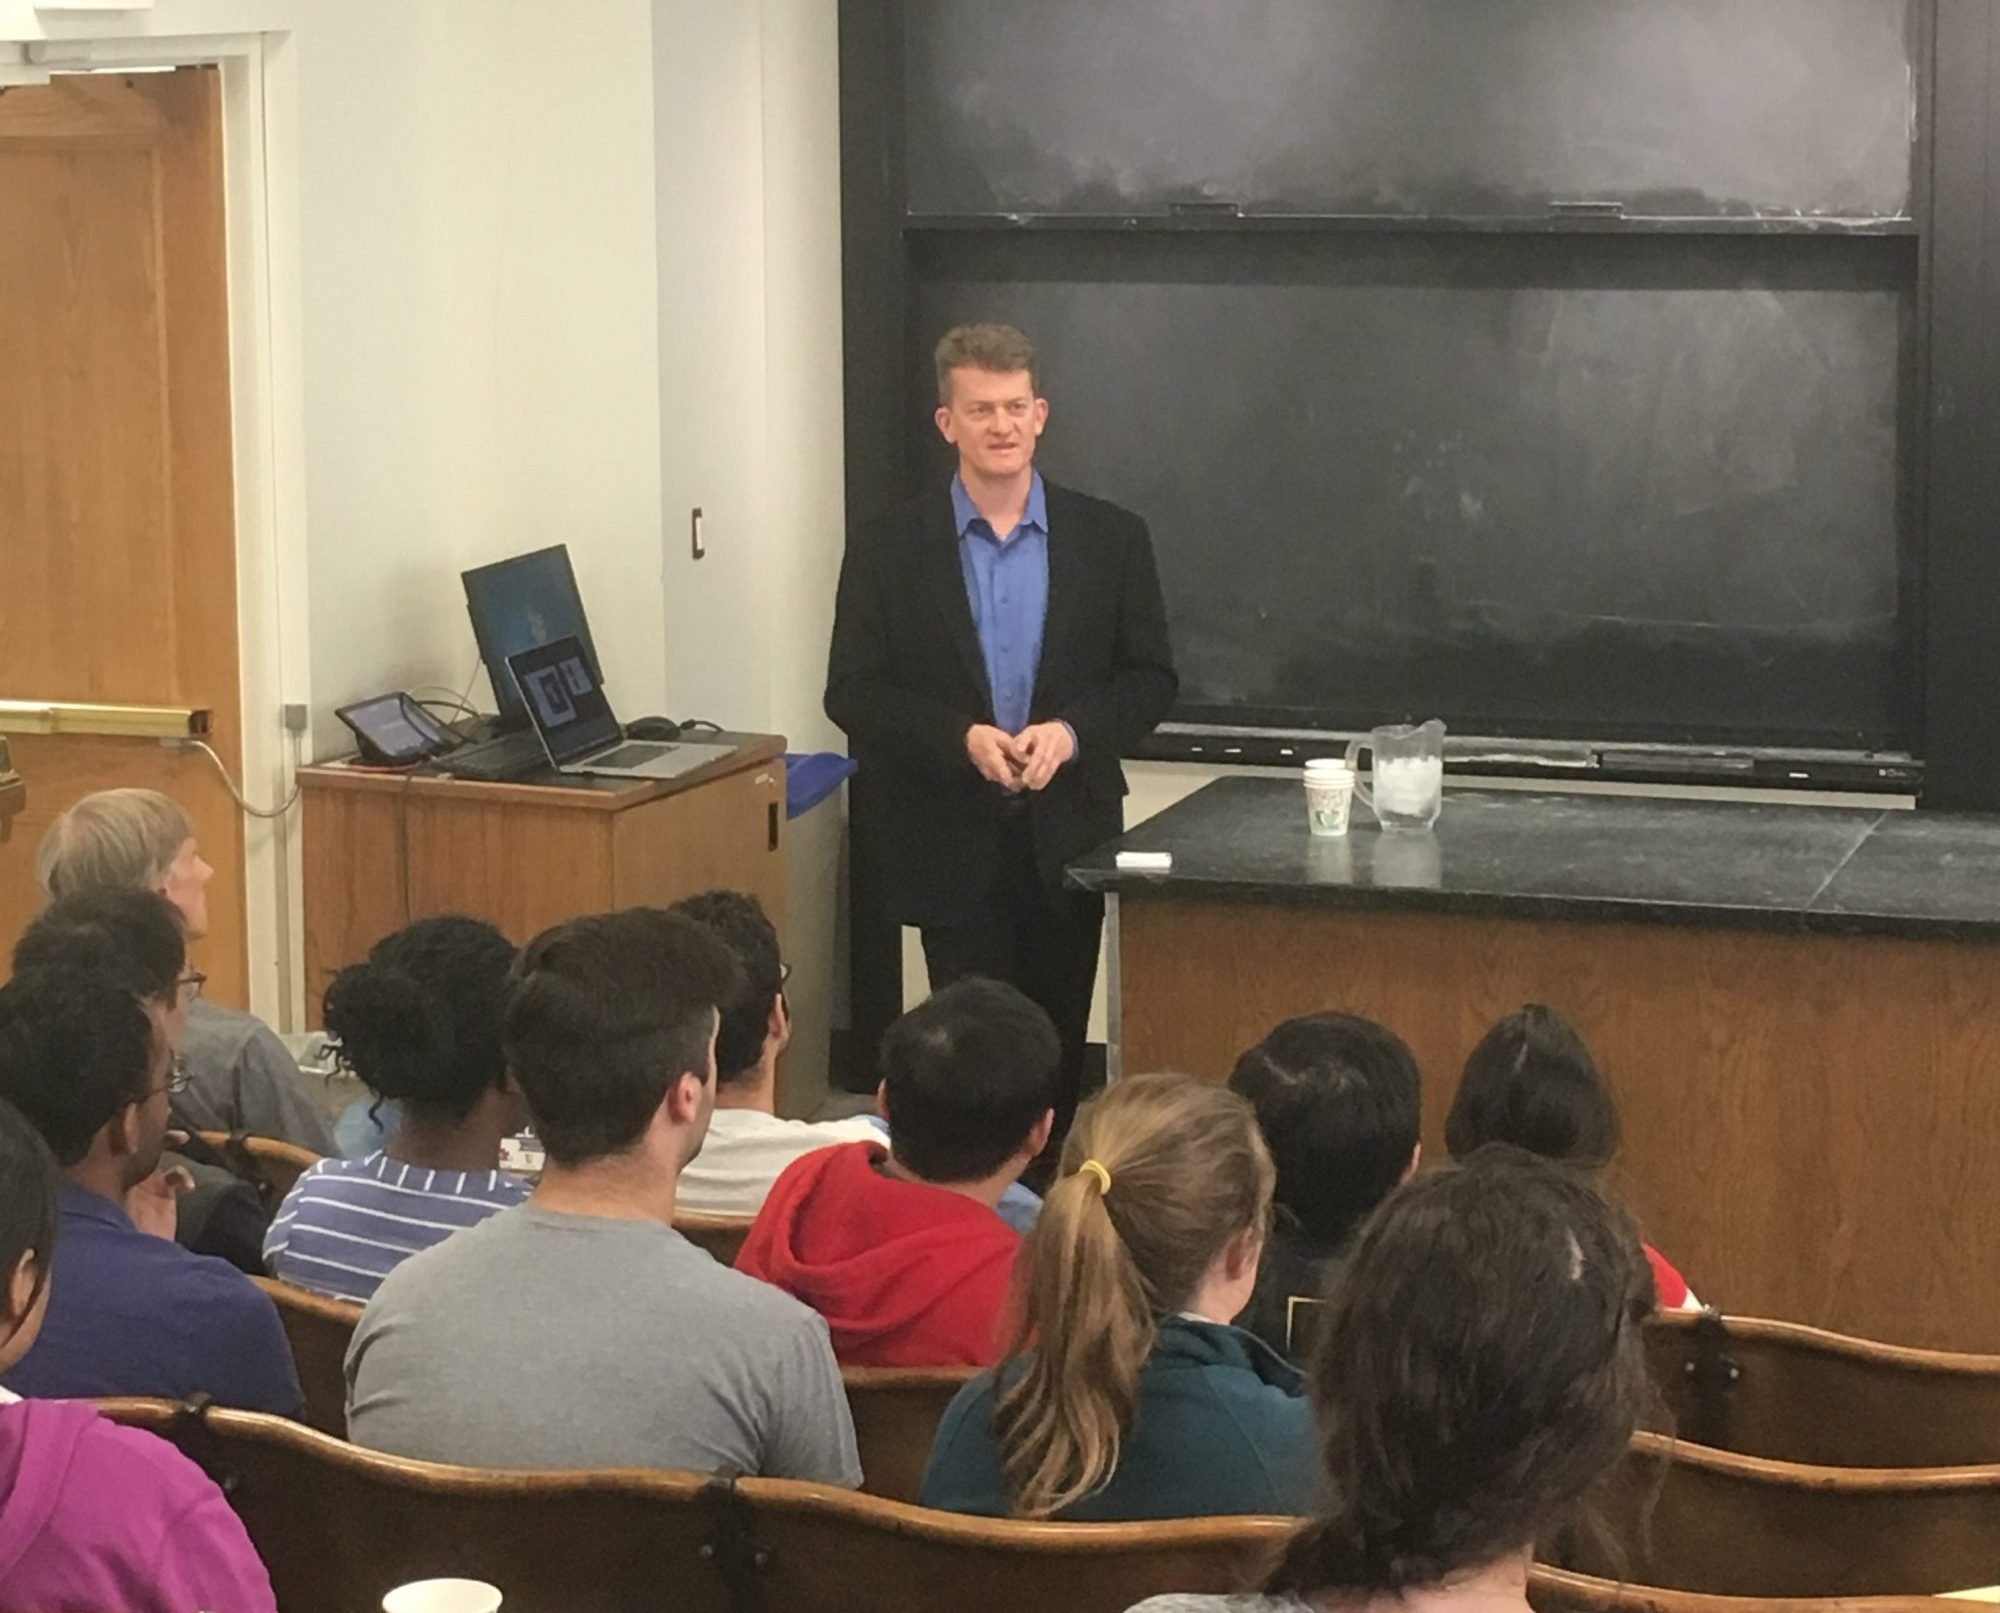 David Giltner speaking at Washington University in St. Louis